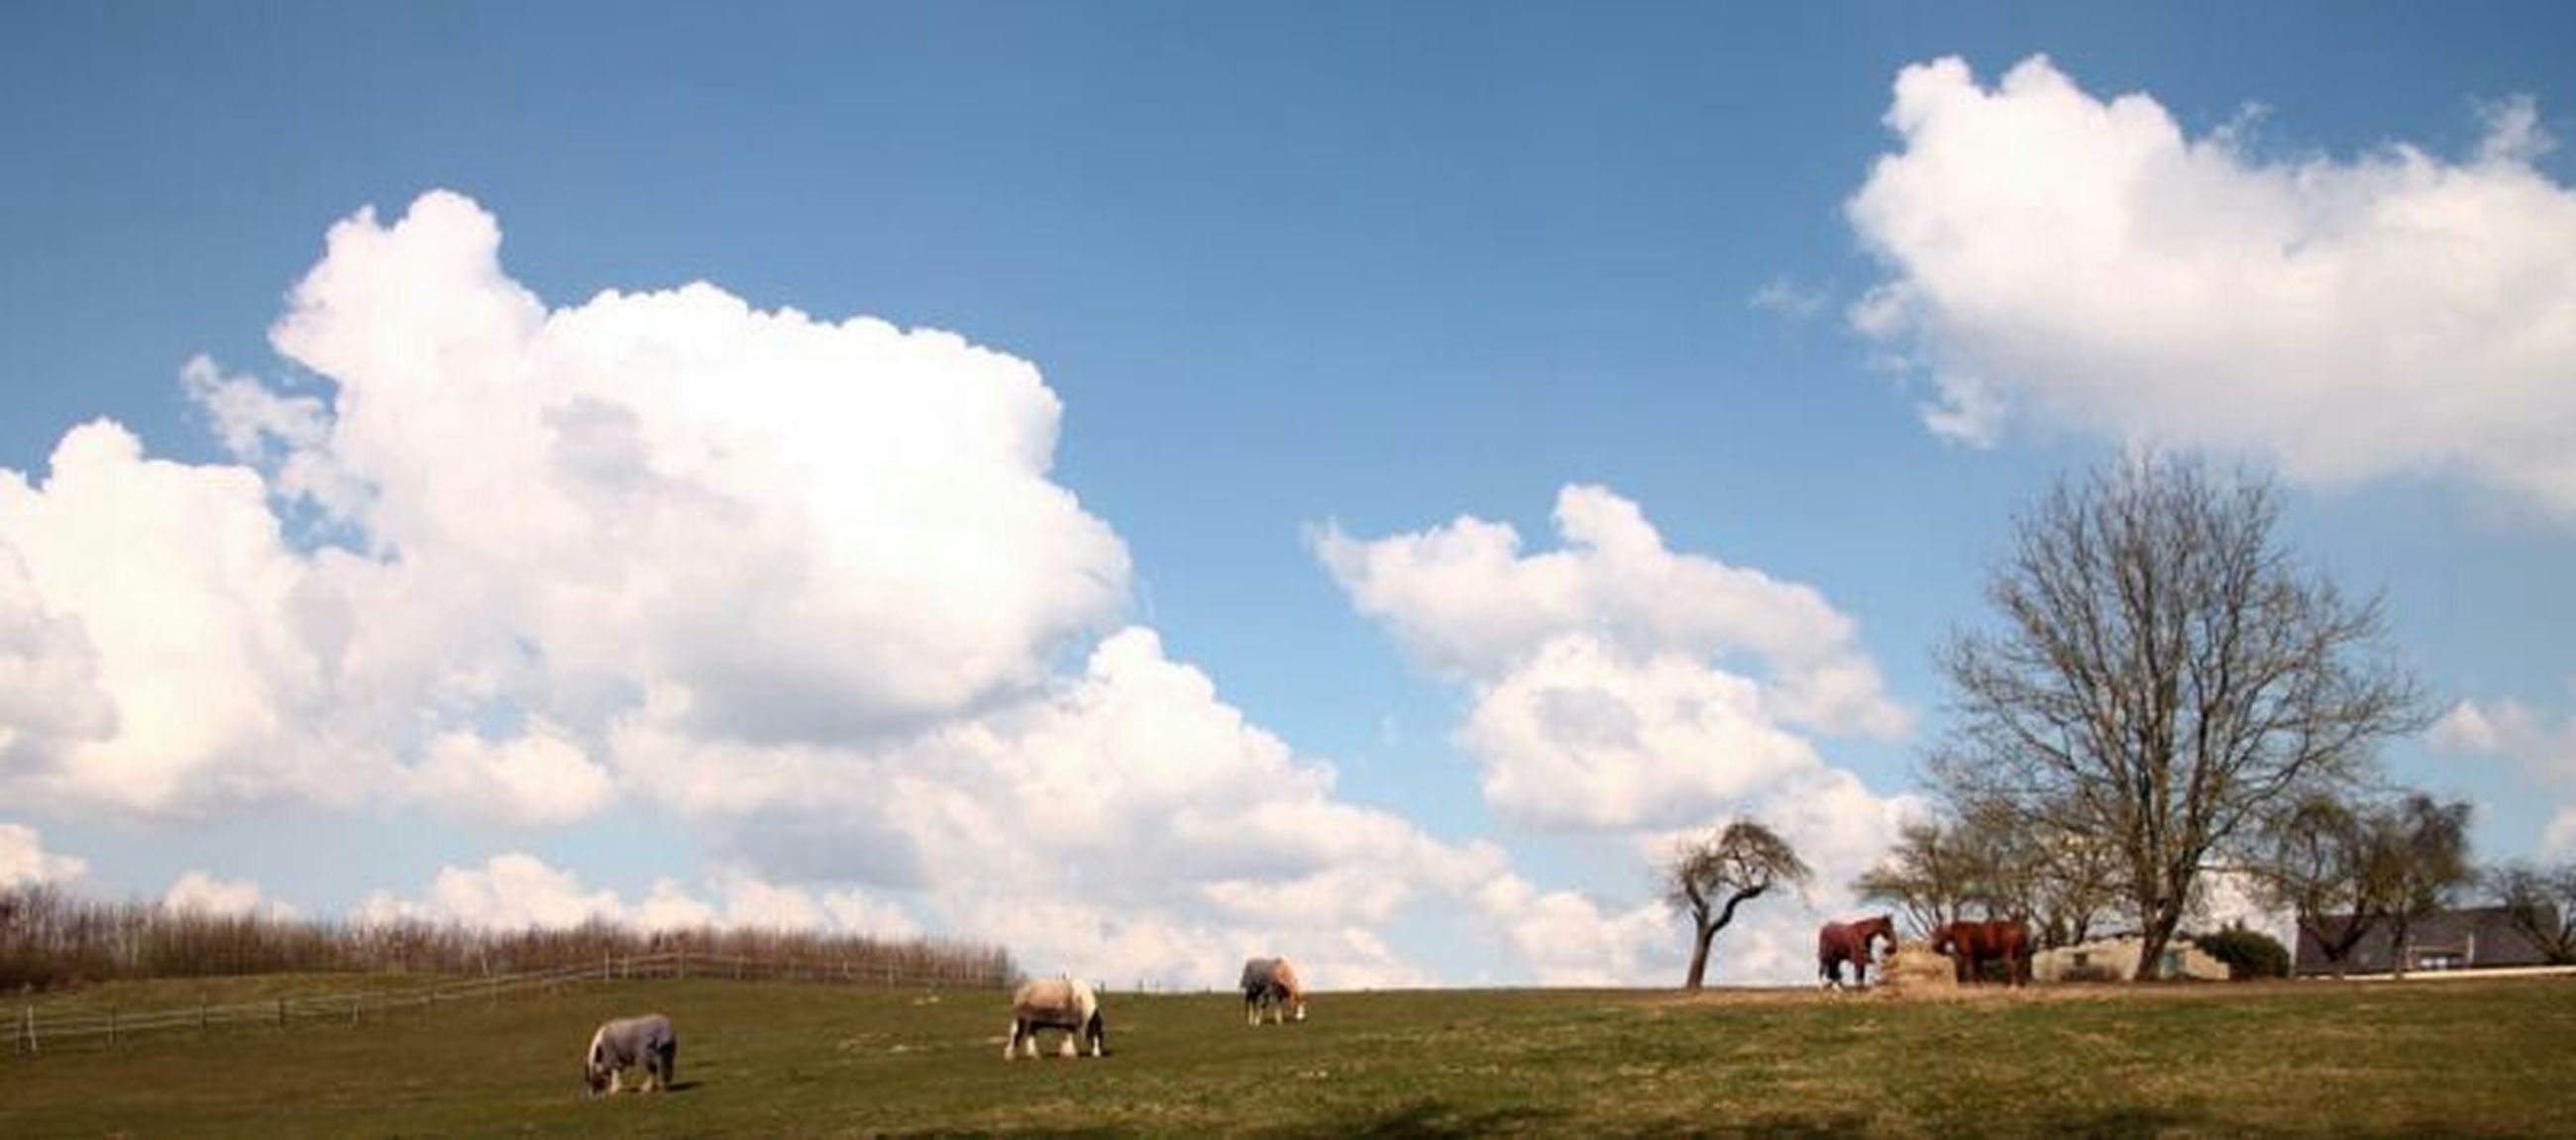 domestic animals, grass, animal themes, sky, mammal, field, landscape, cloud - sky, livestock, grassy, horse, cloud, tree, nature, pets, cow, men, dog, beauty in nature